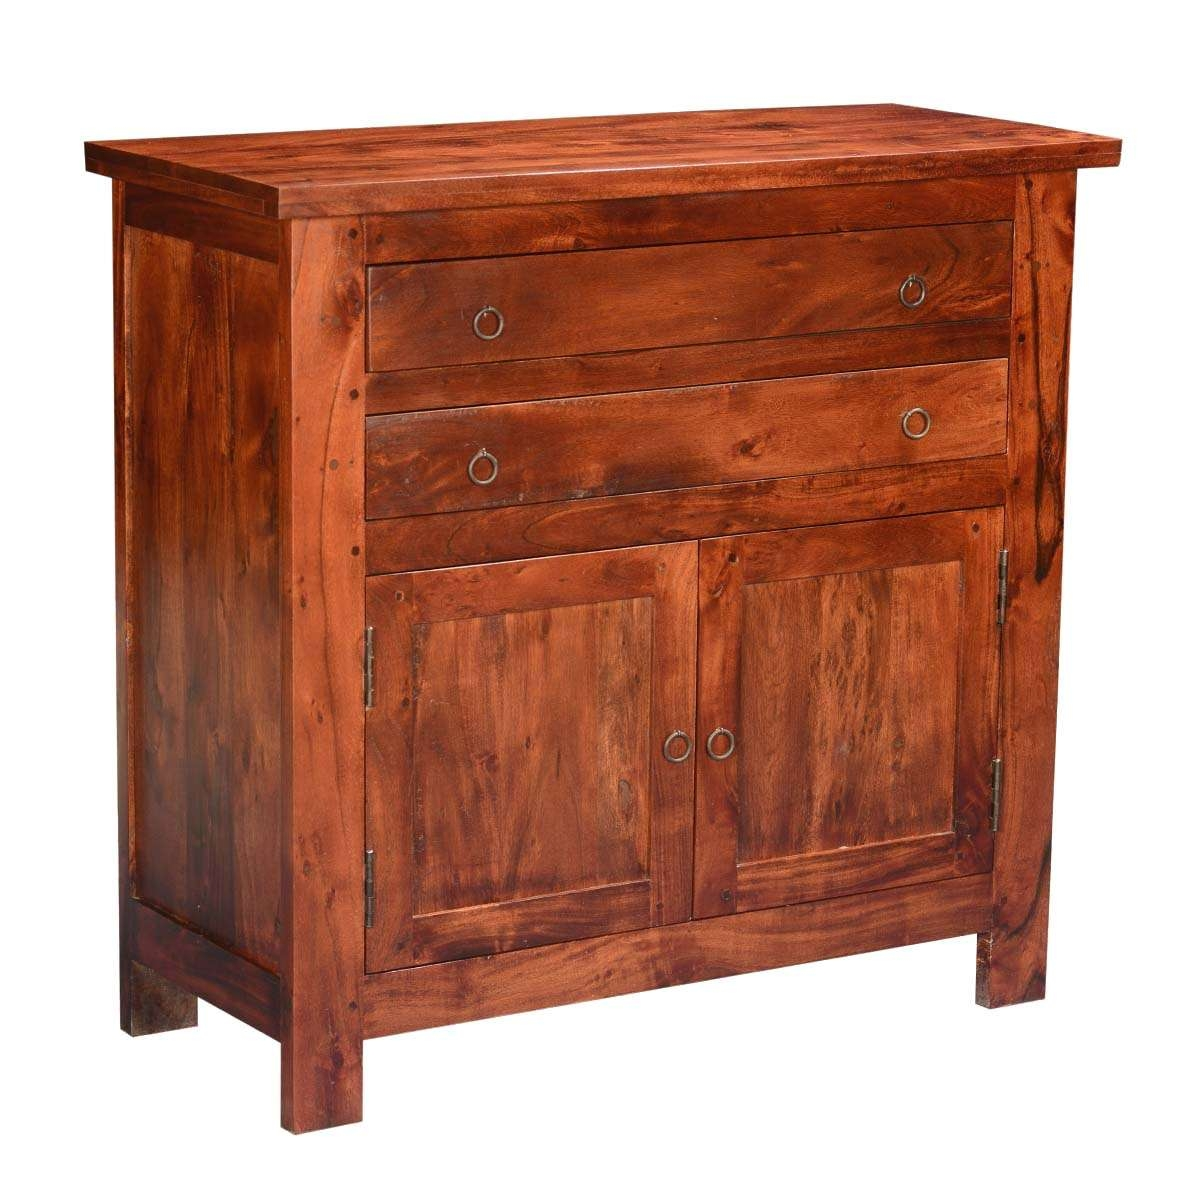 Classic Acacia Wood Buffet Sideboard Cabinet Throughout Mission Sideboards (View 9 of 20)